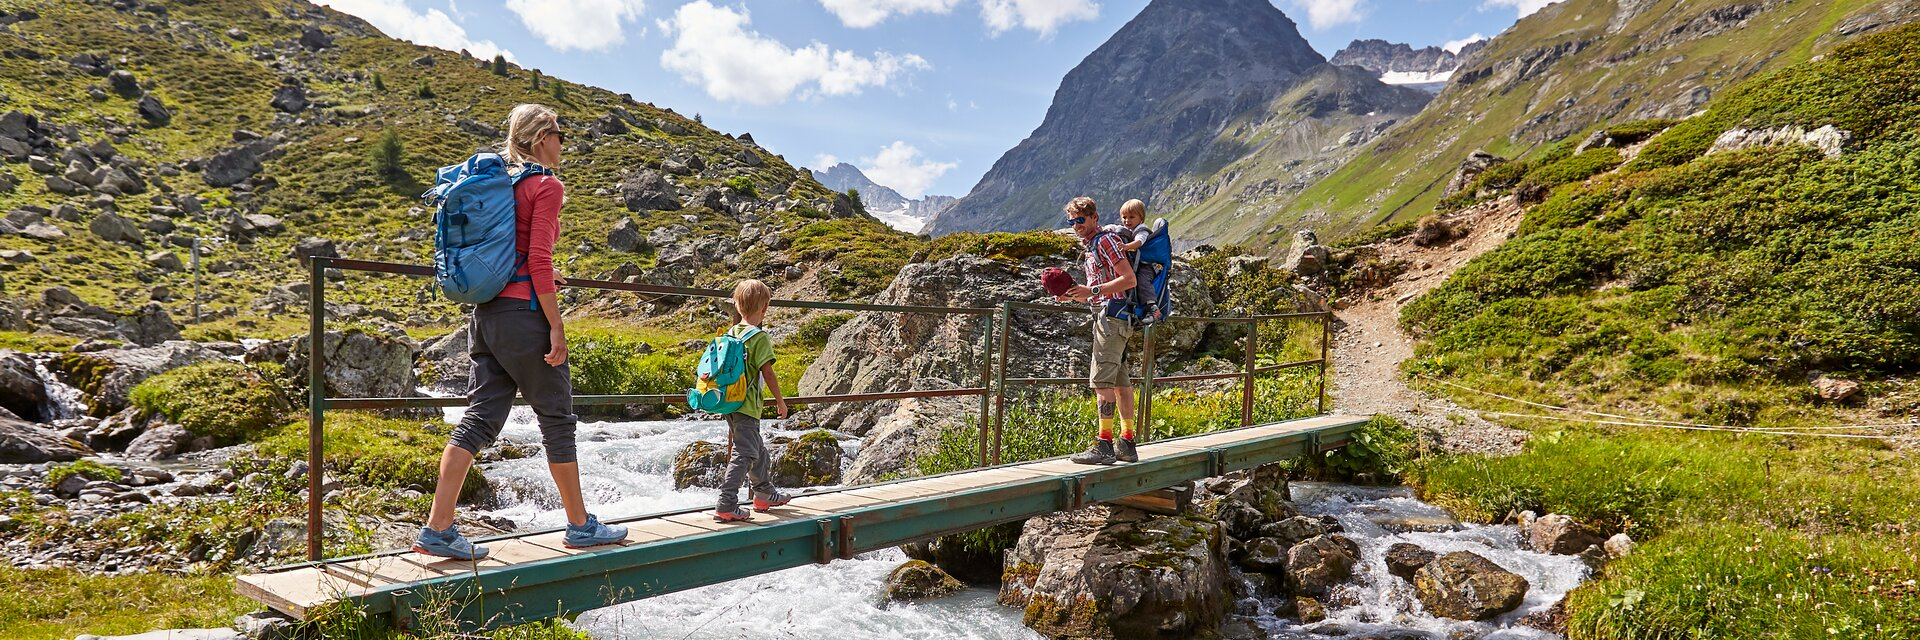 family hike in Ischgl